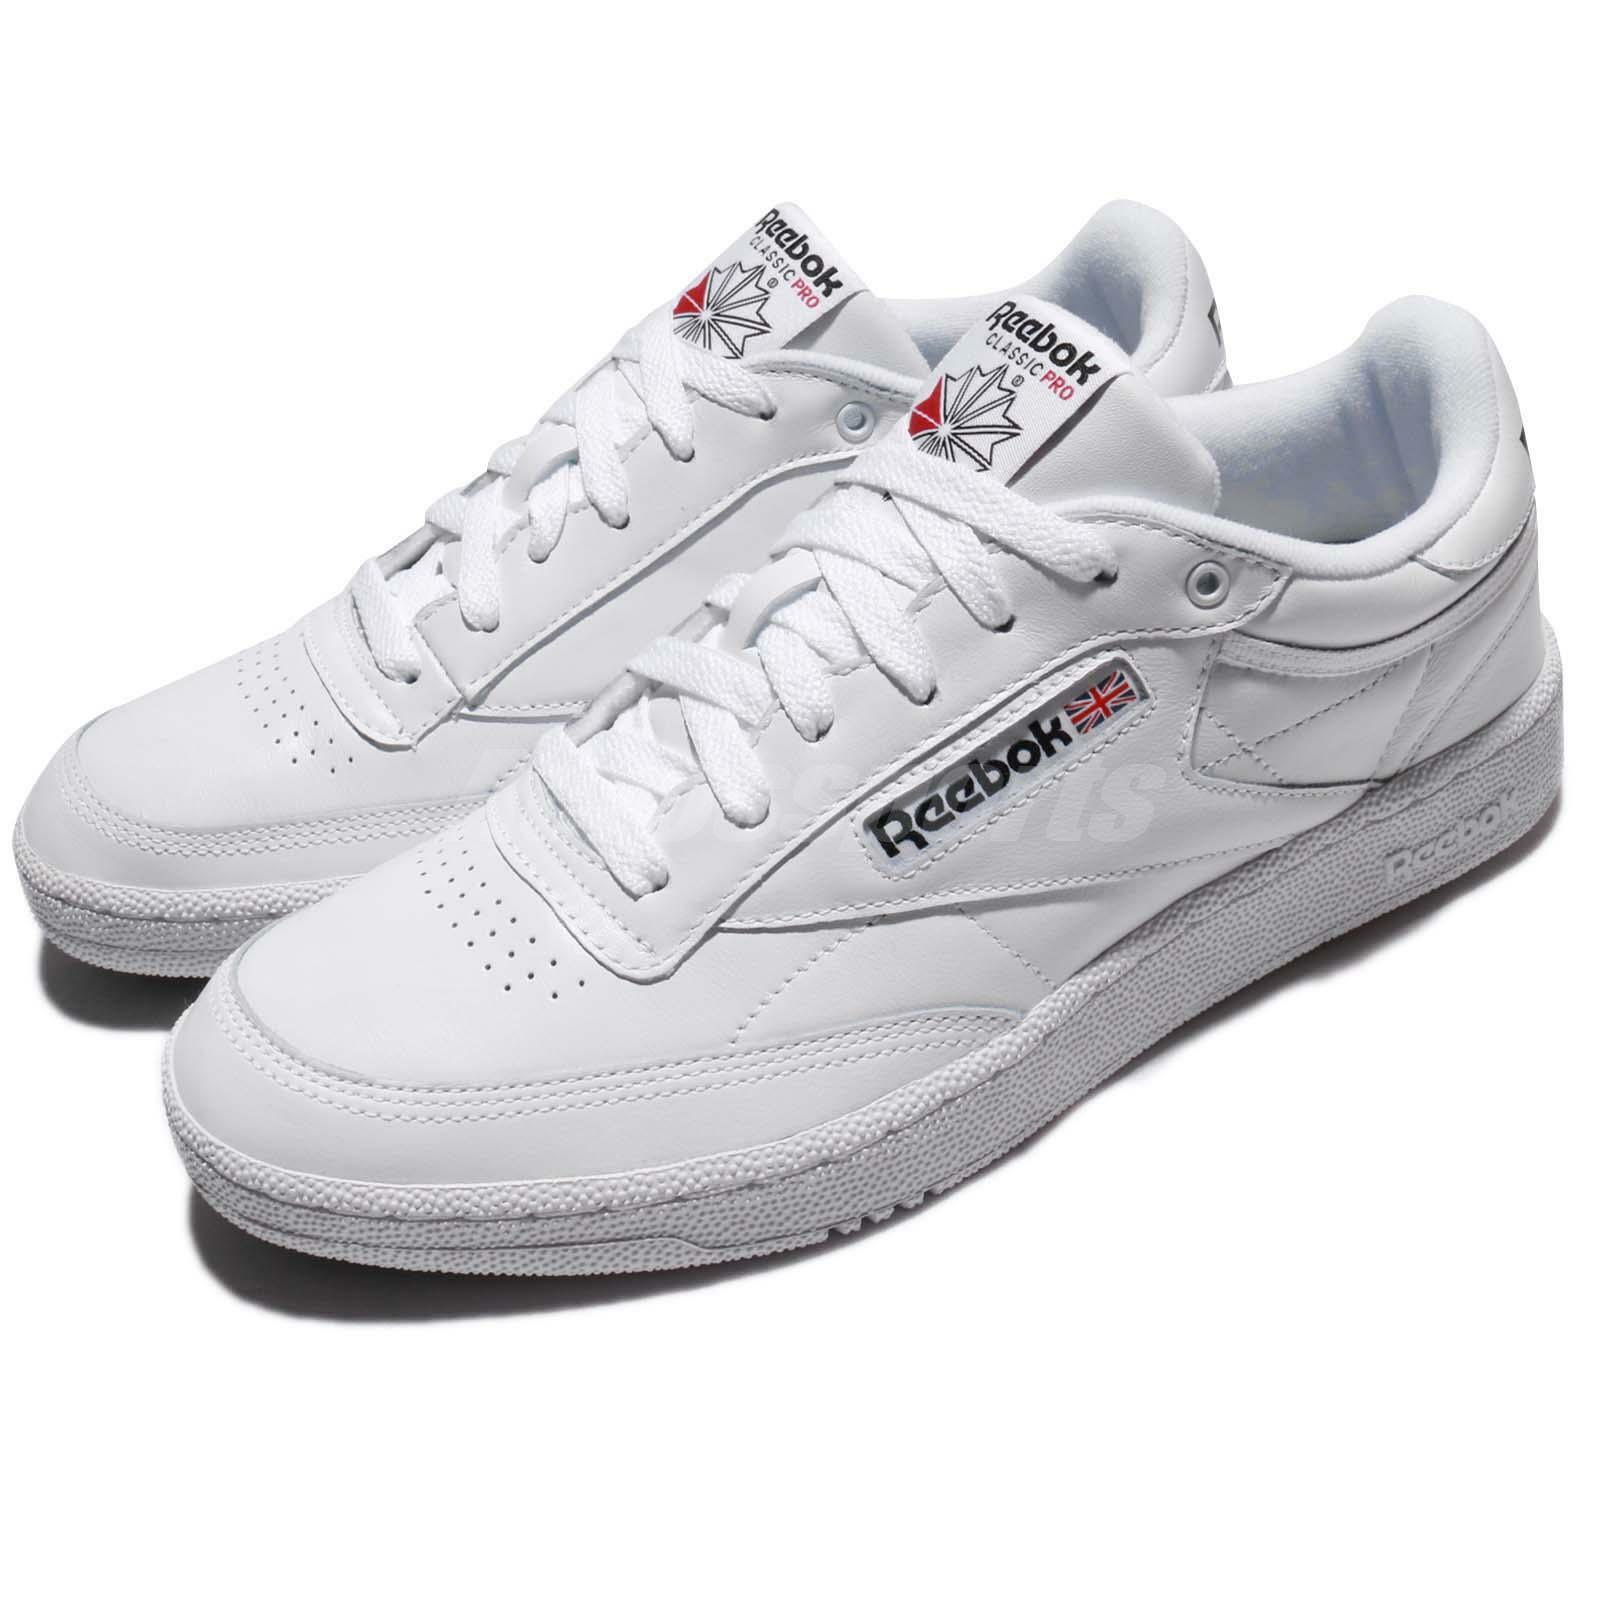 Reebok Club C 85 Pro Leather blanco Classic Men zapatos zapatillas Trainers CM9430